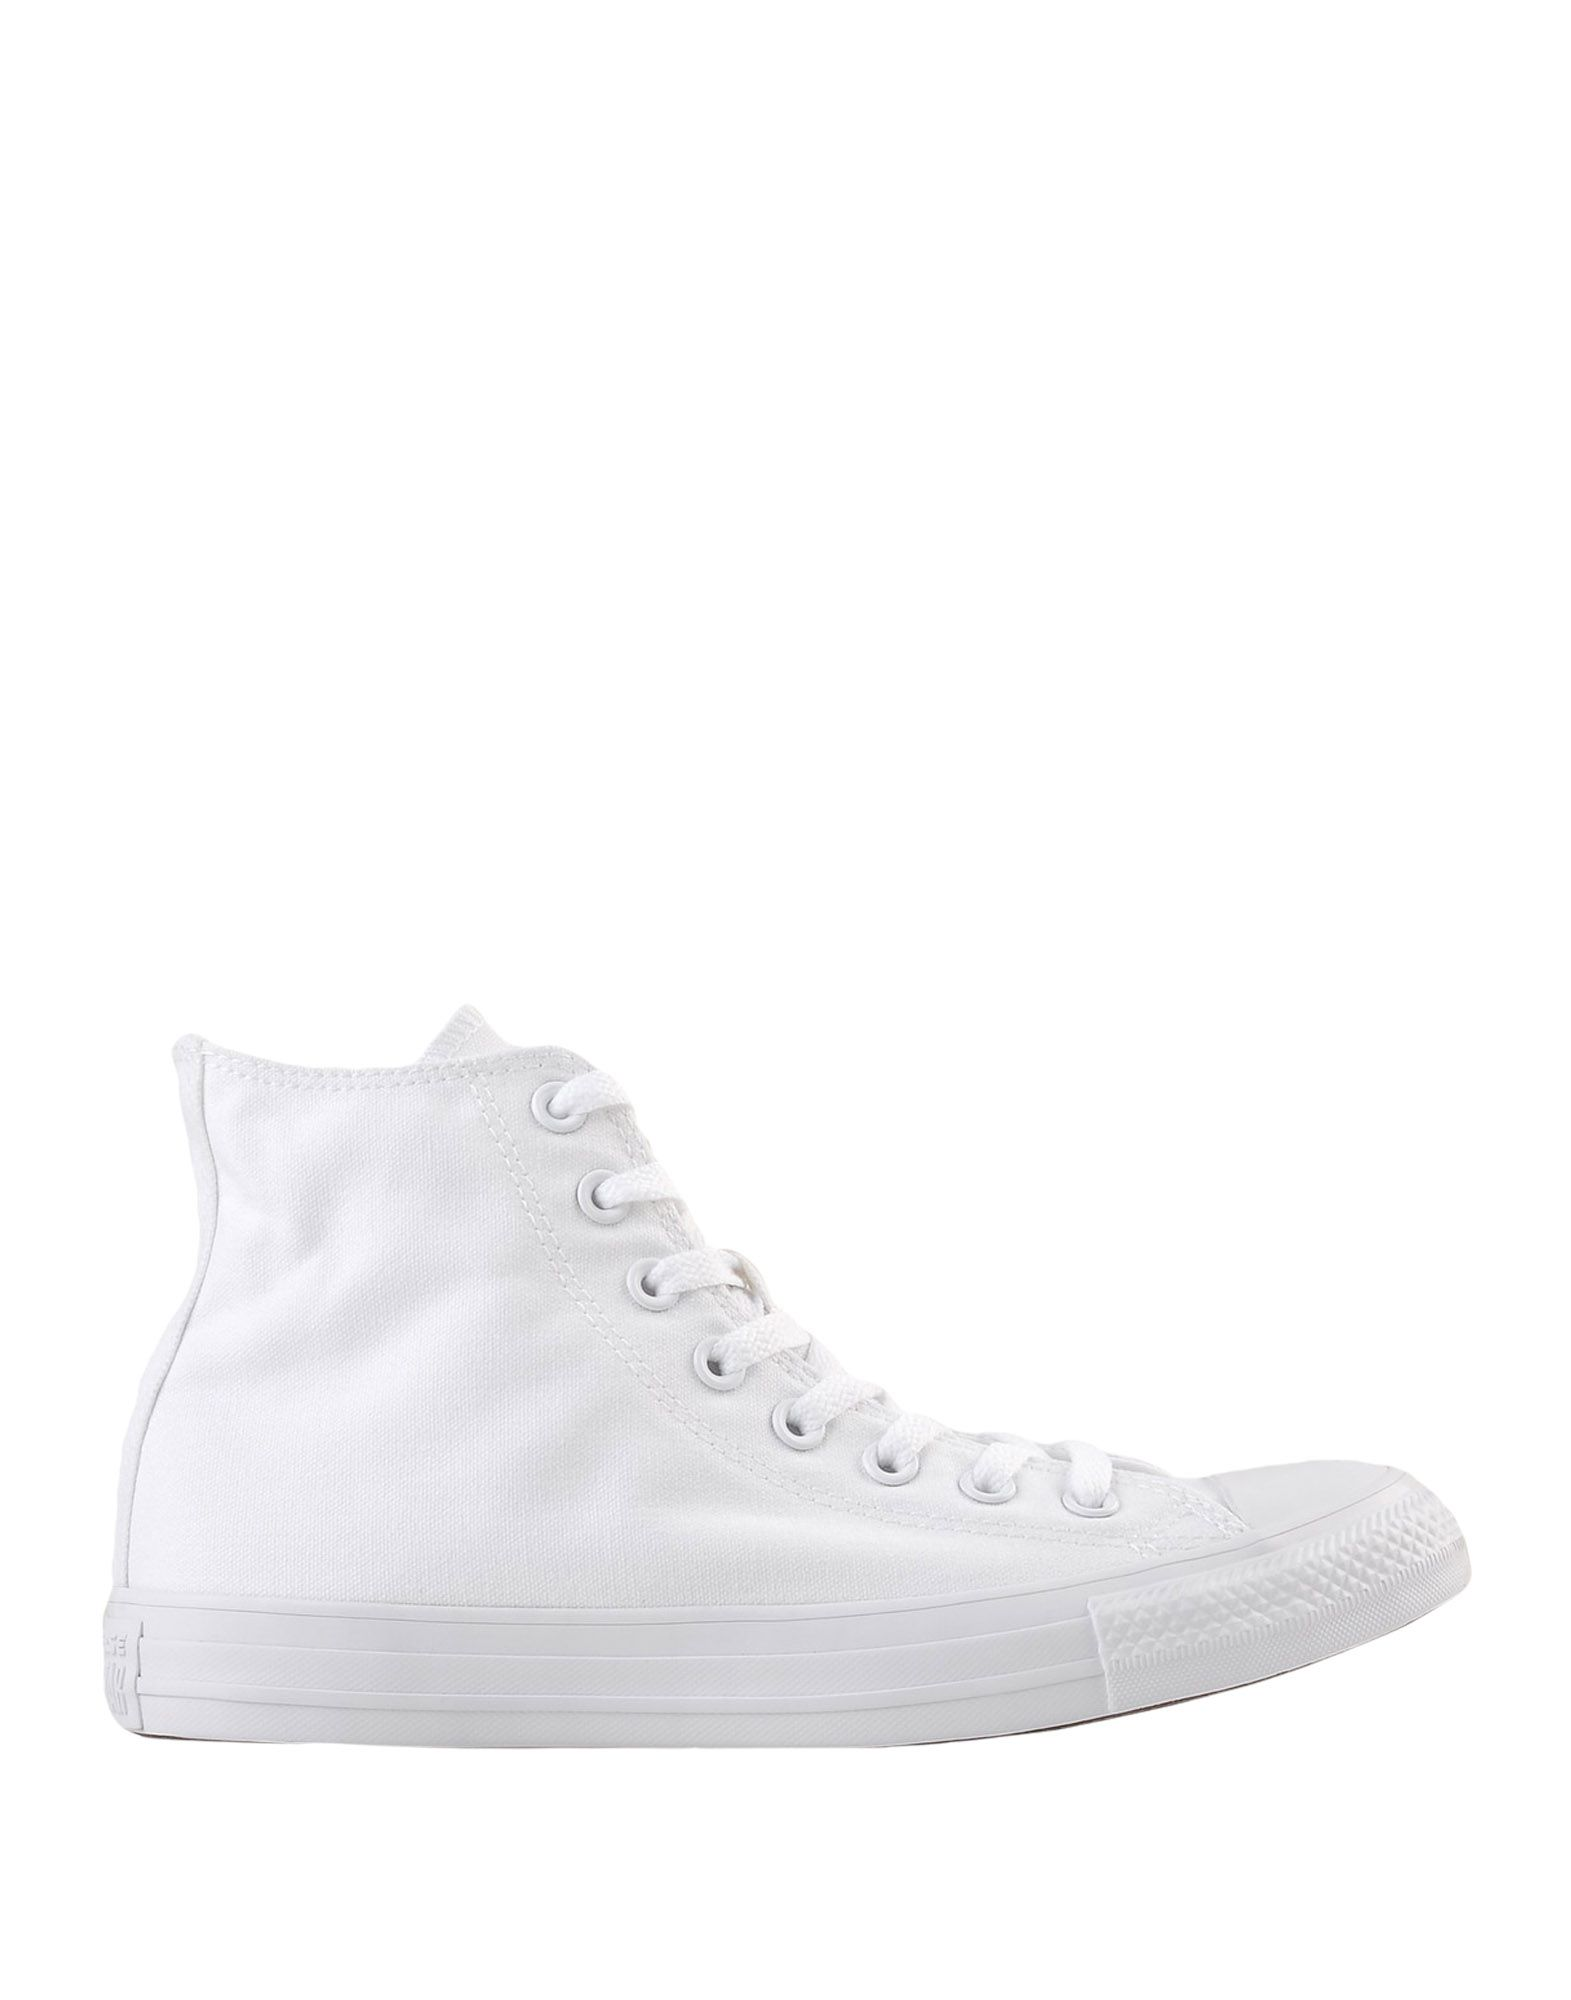 Baskets Converse All Star Ct As Sp - Femme - Baskets Converse All Star Blanc Réduction de prix saisonnier, remise